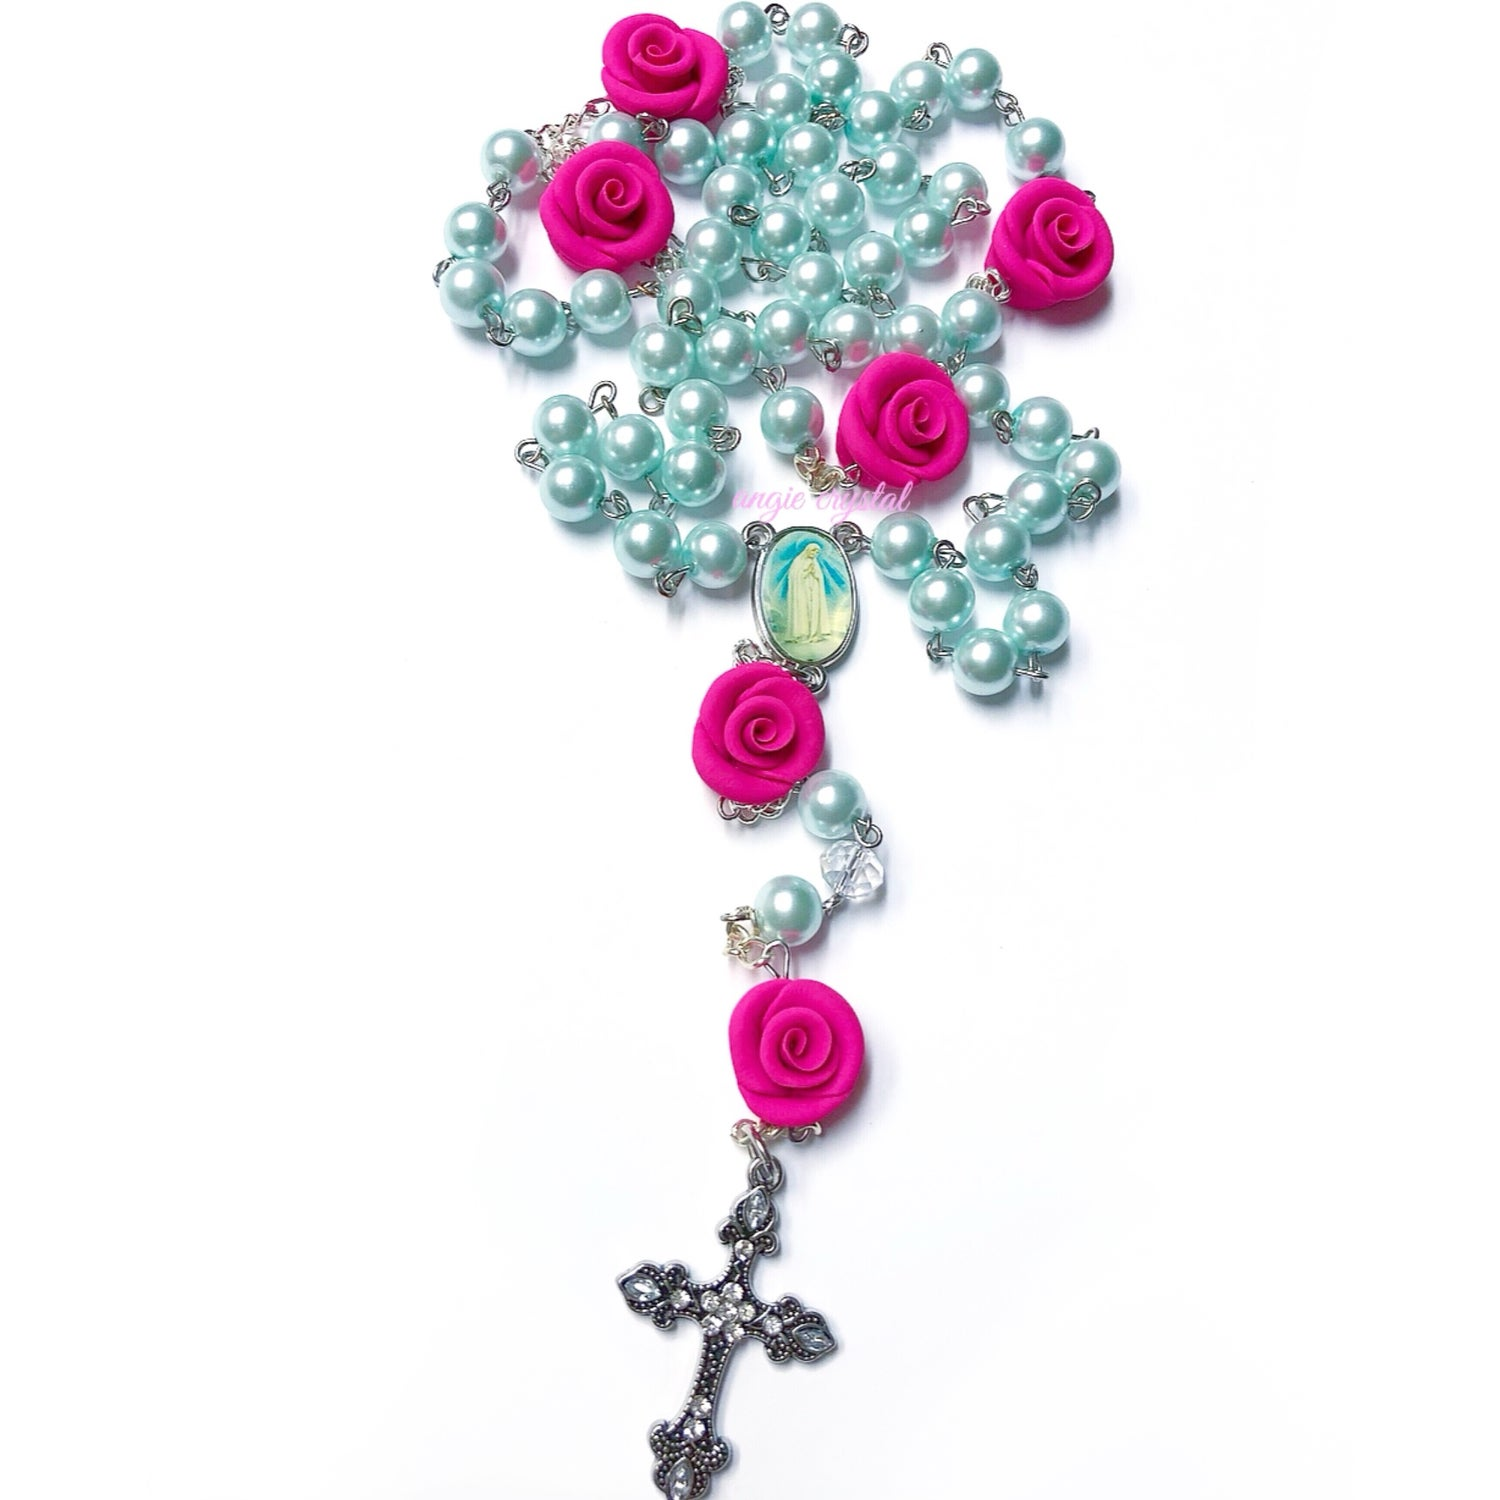 Image of Candy Pink & Blue Pearl Rosary